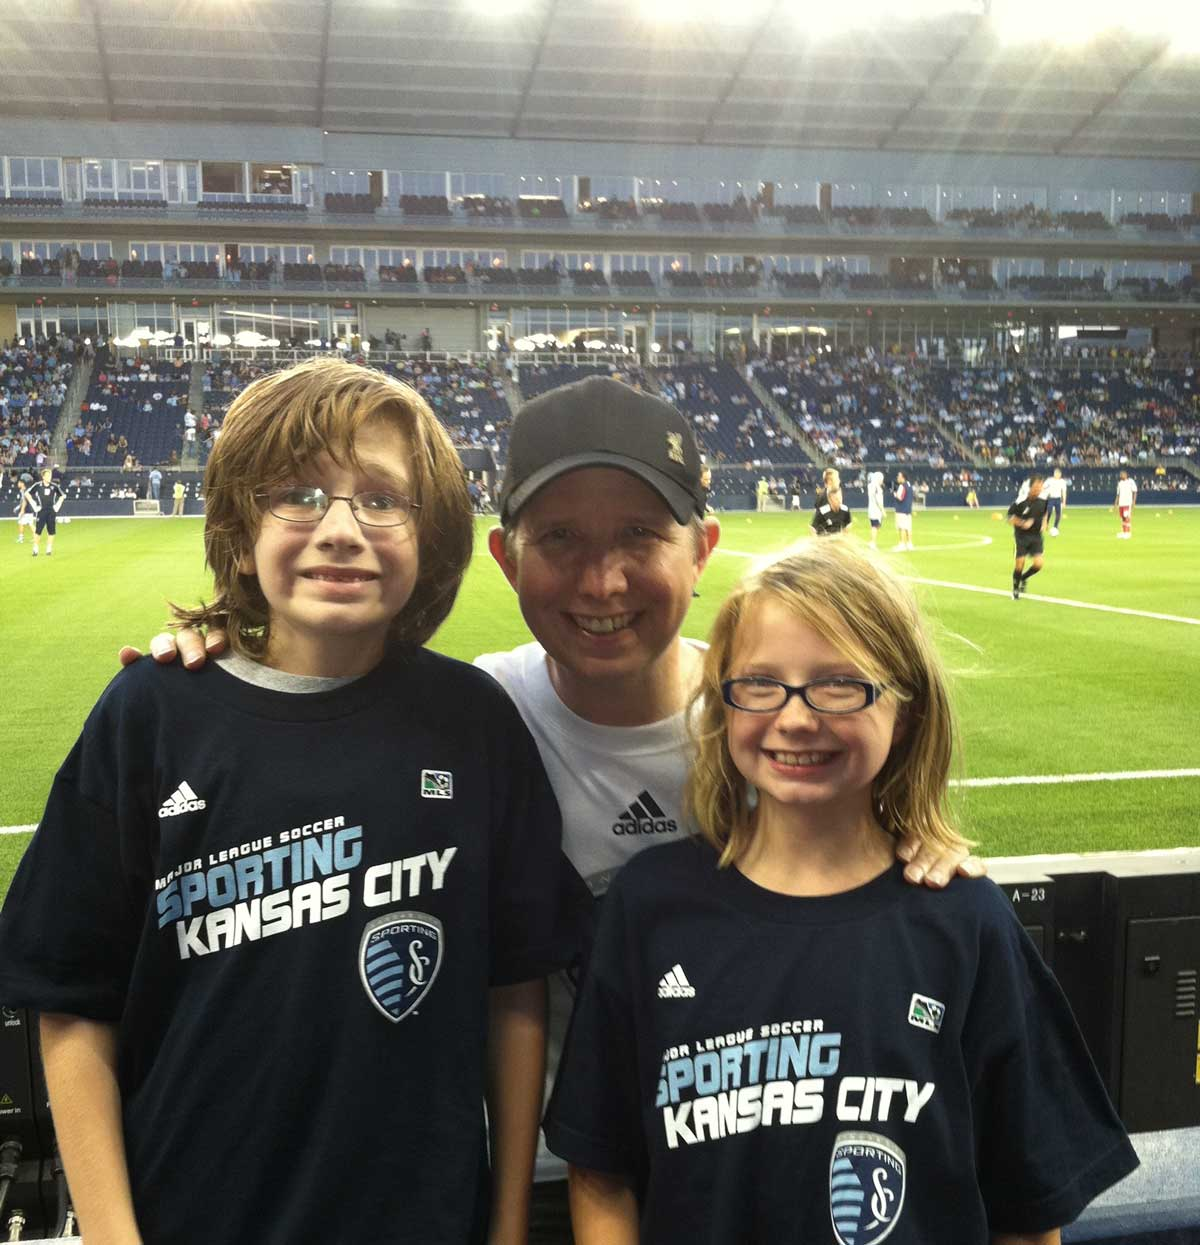 The author with his children at the match.